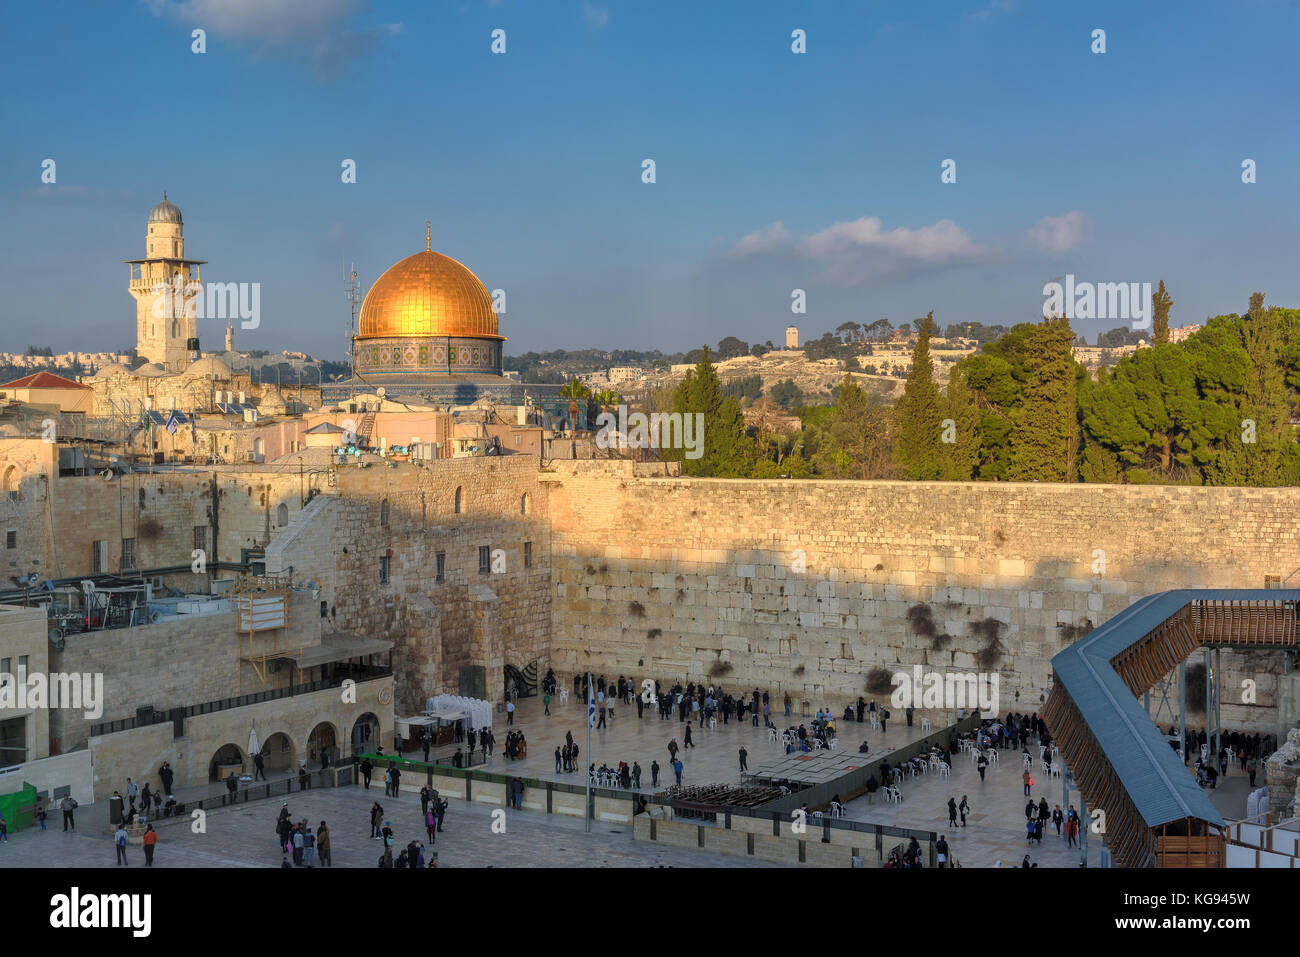 Western Wall in Jerusalem Old City, Israel. Stock Photo